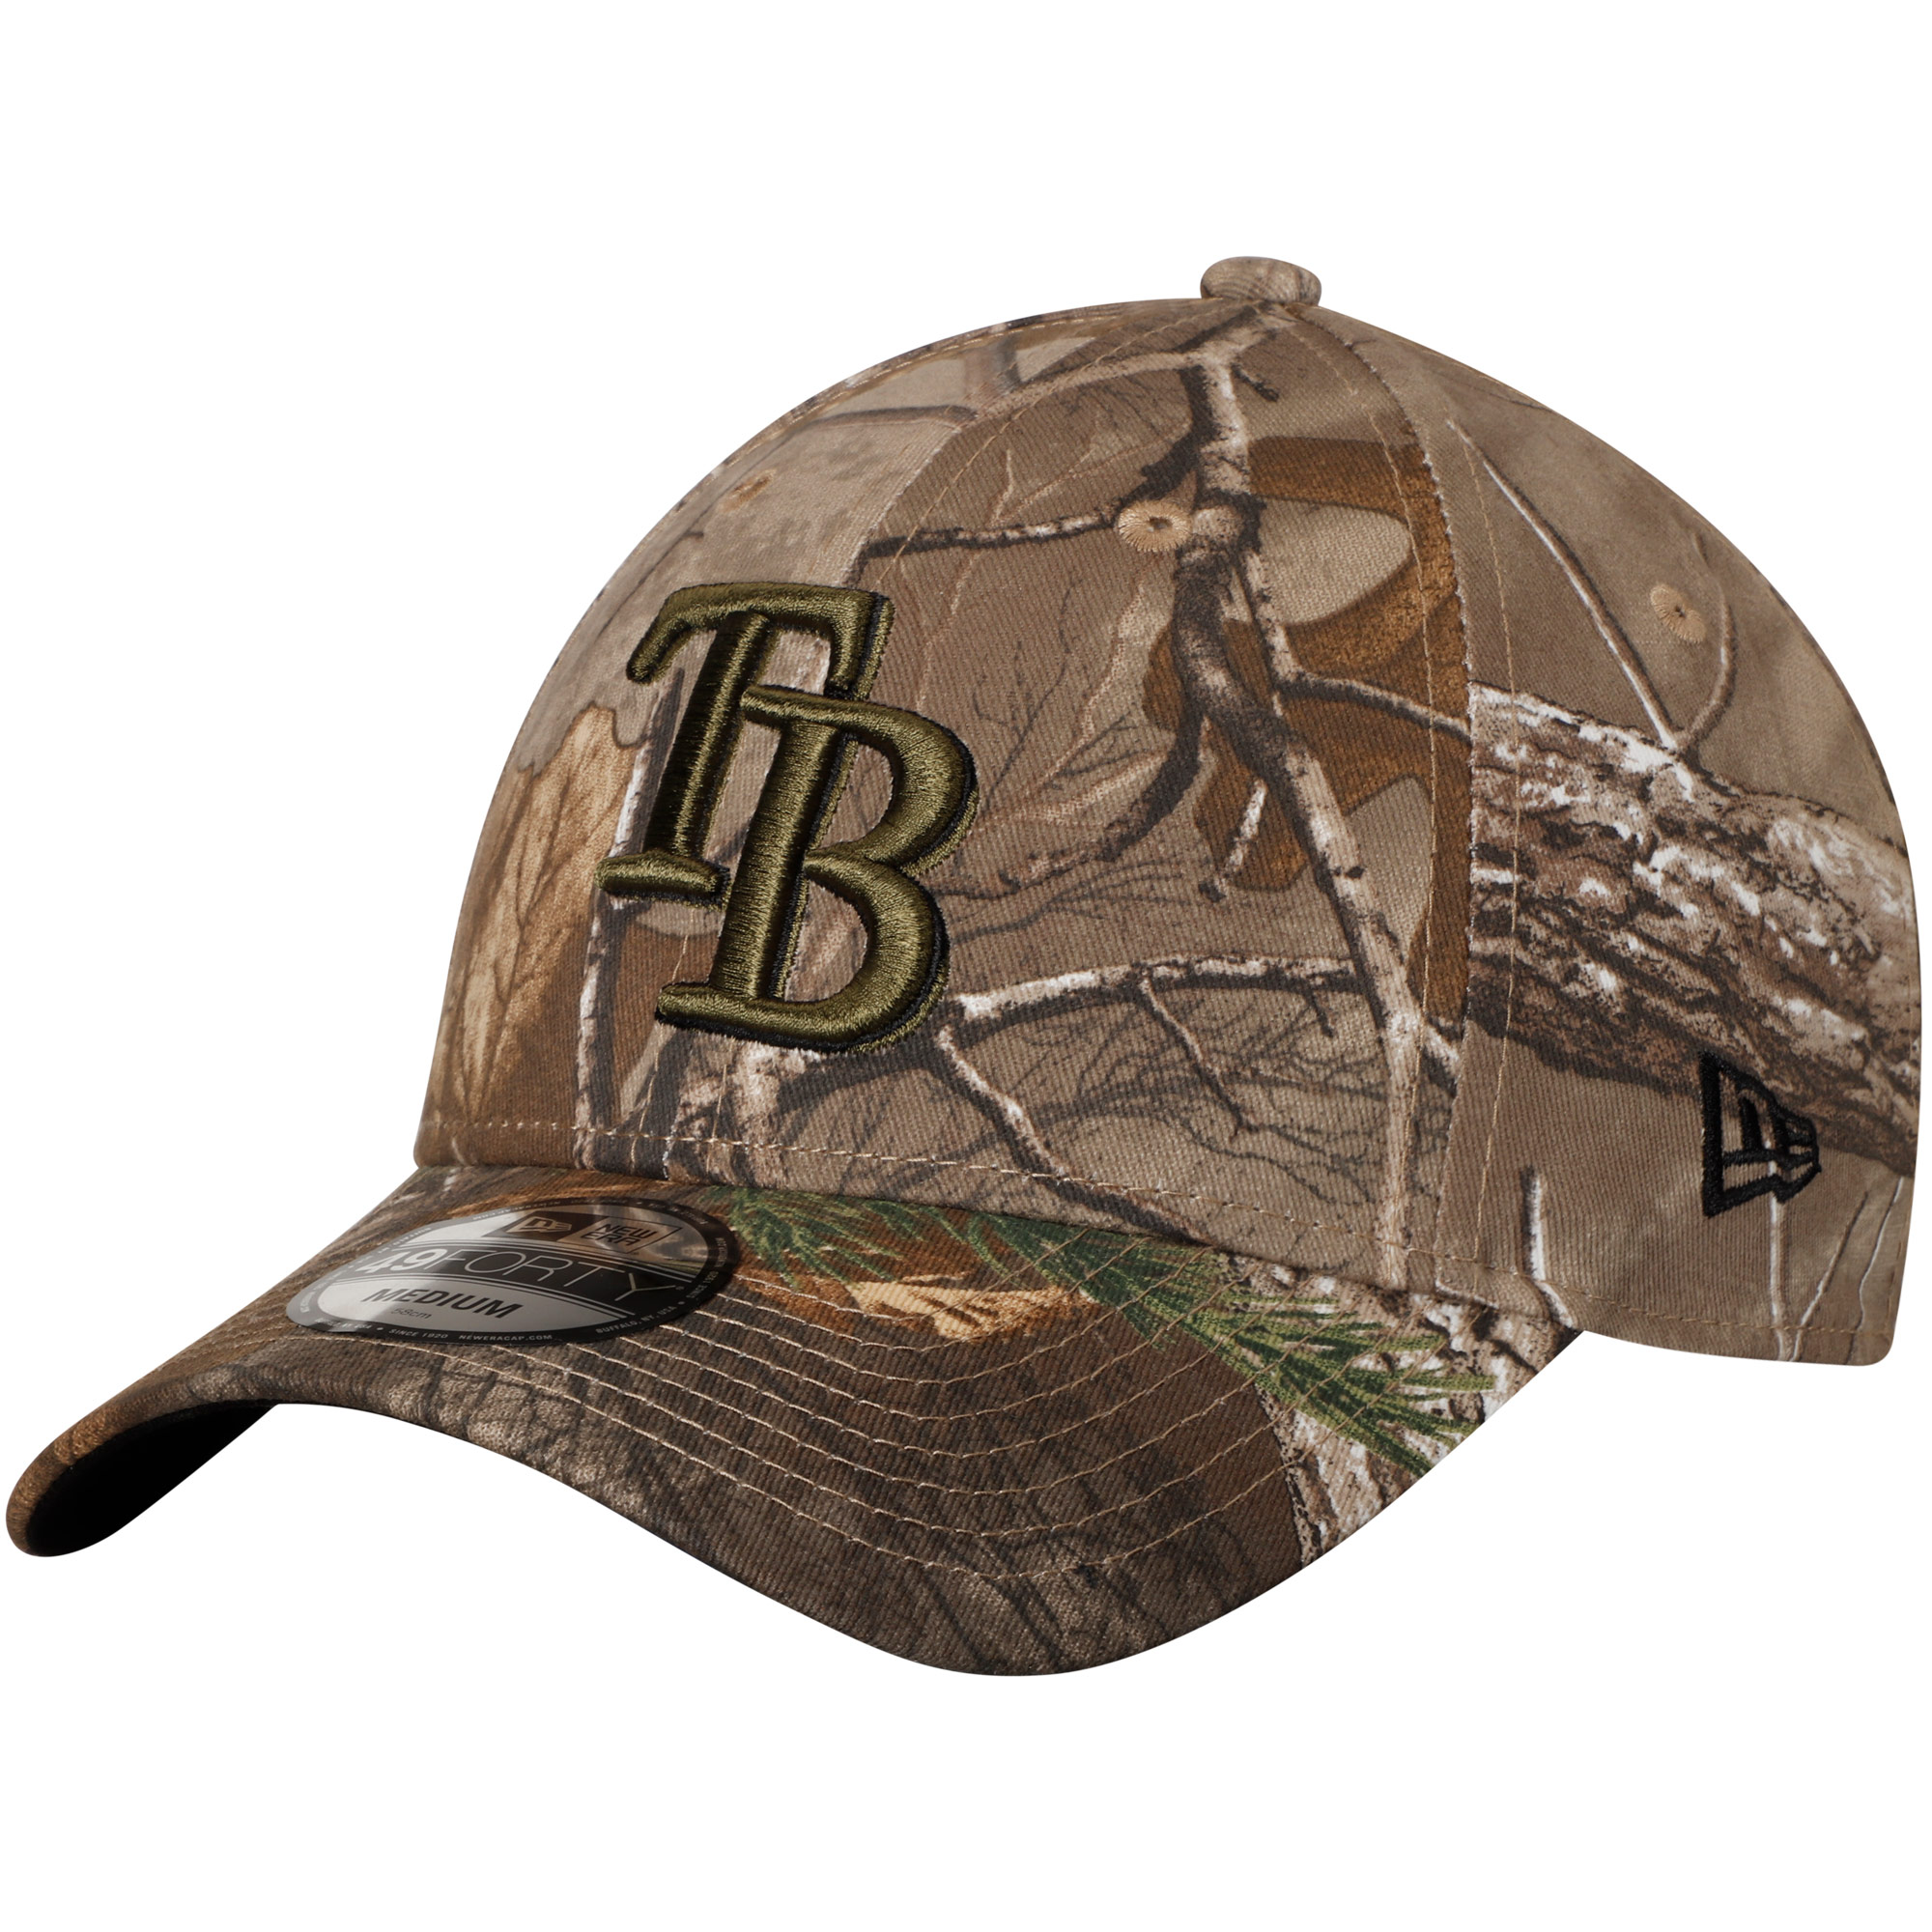 Tampa Bay Rays New Era Realtree 49FORTY Fitted Hat - Camo